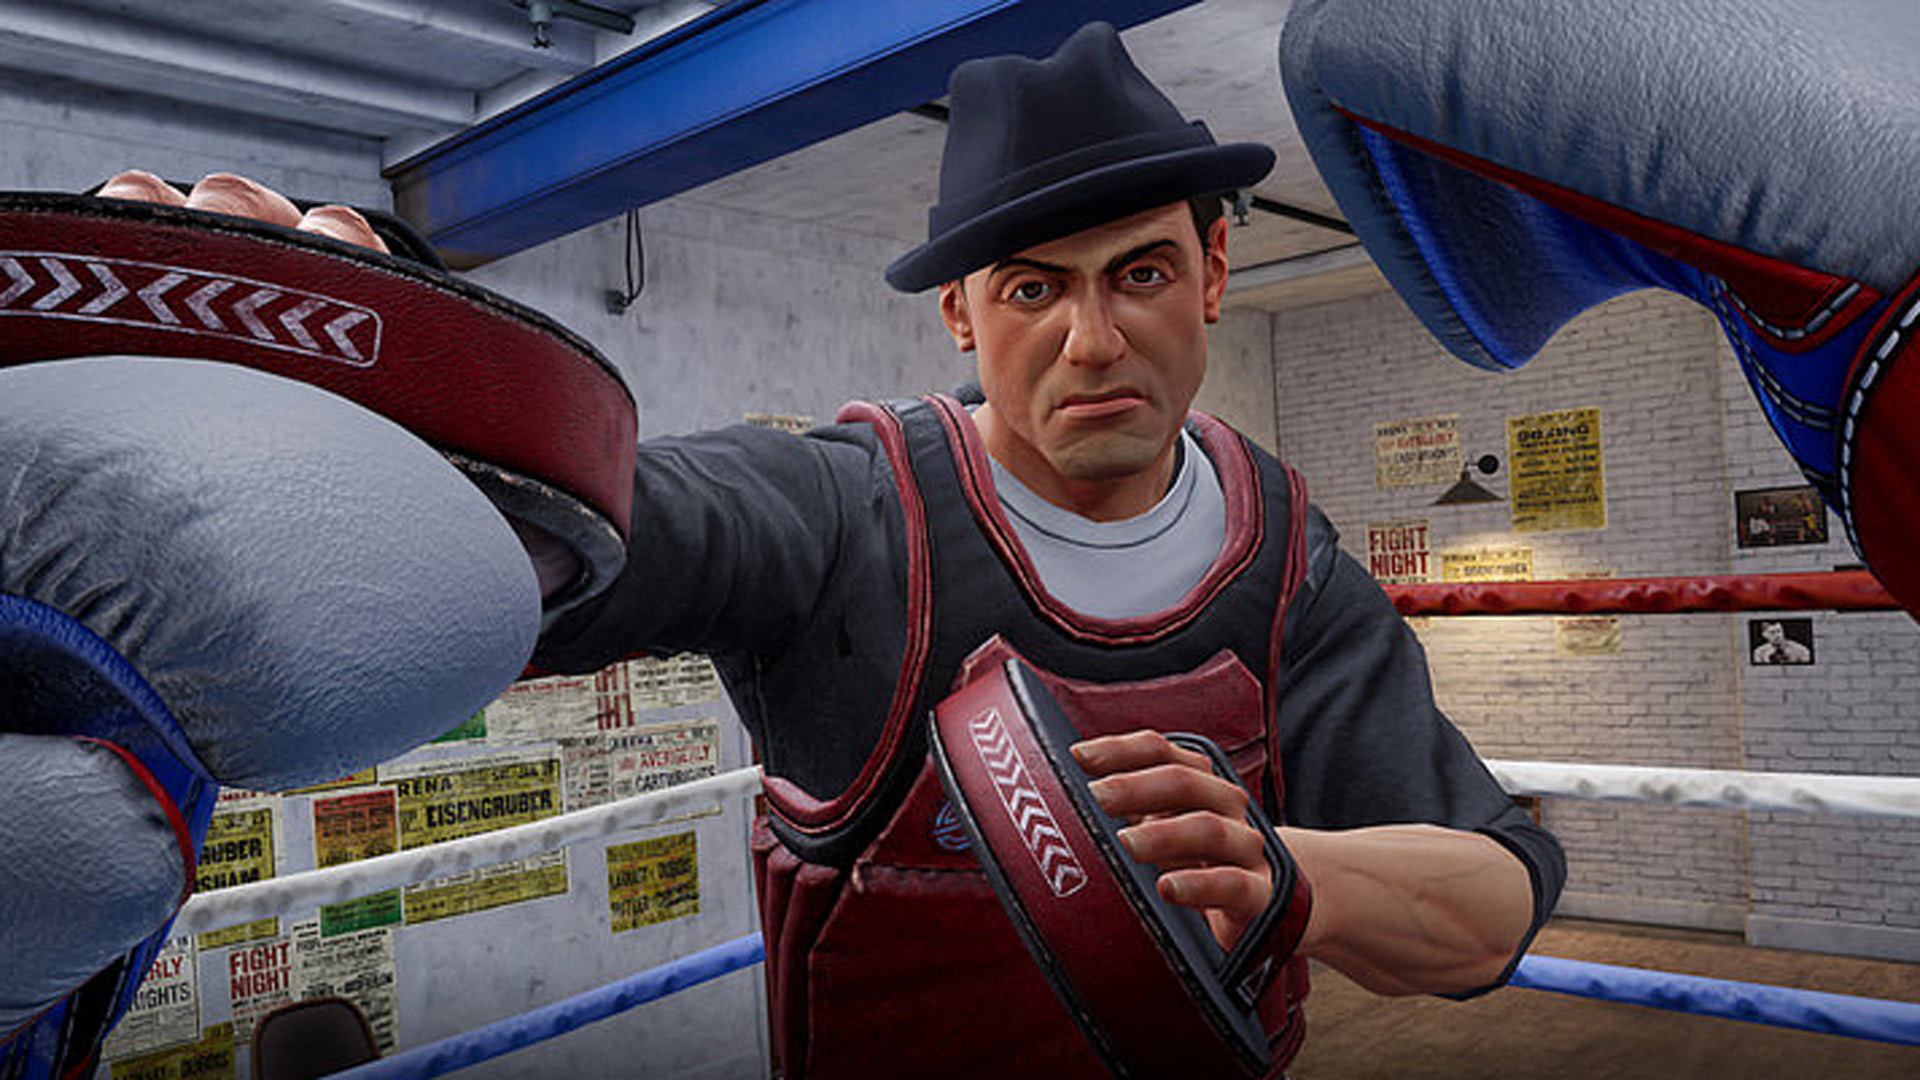 'CREED: Rise to Glory' to Get First Free Content Update This Month – Road to VR